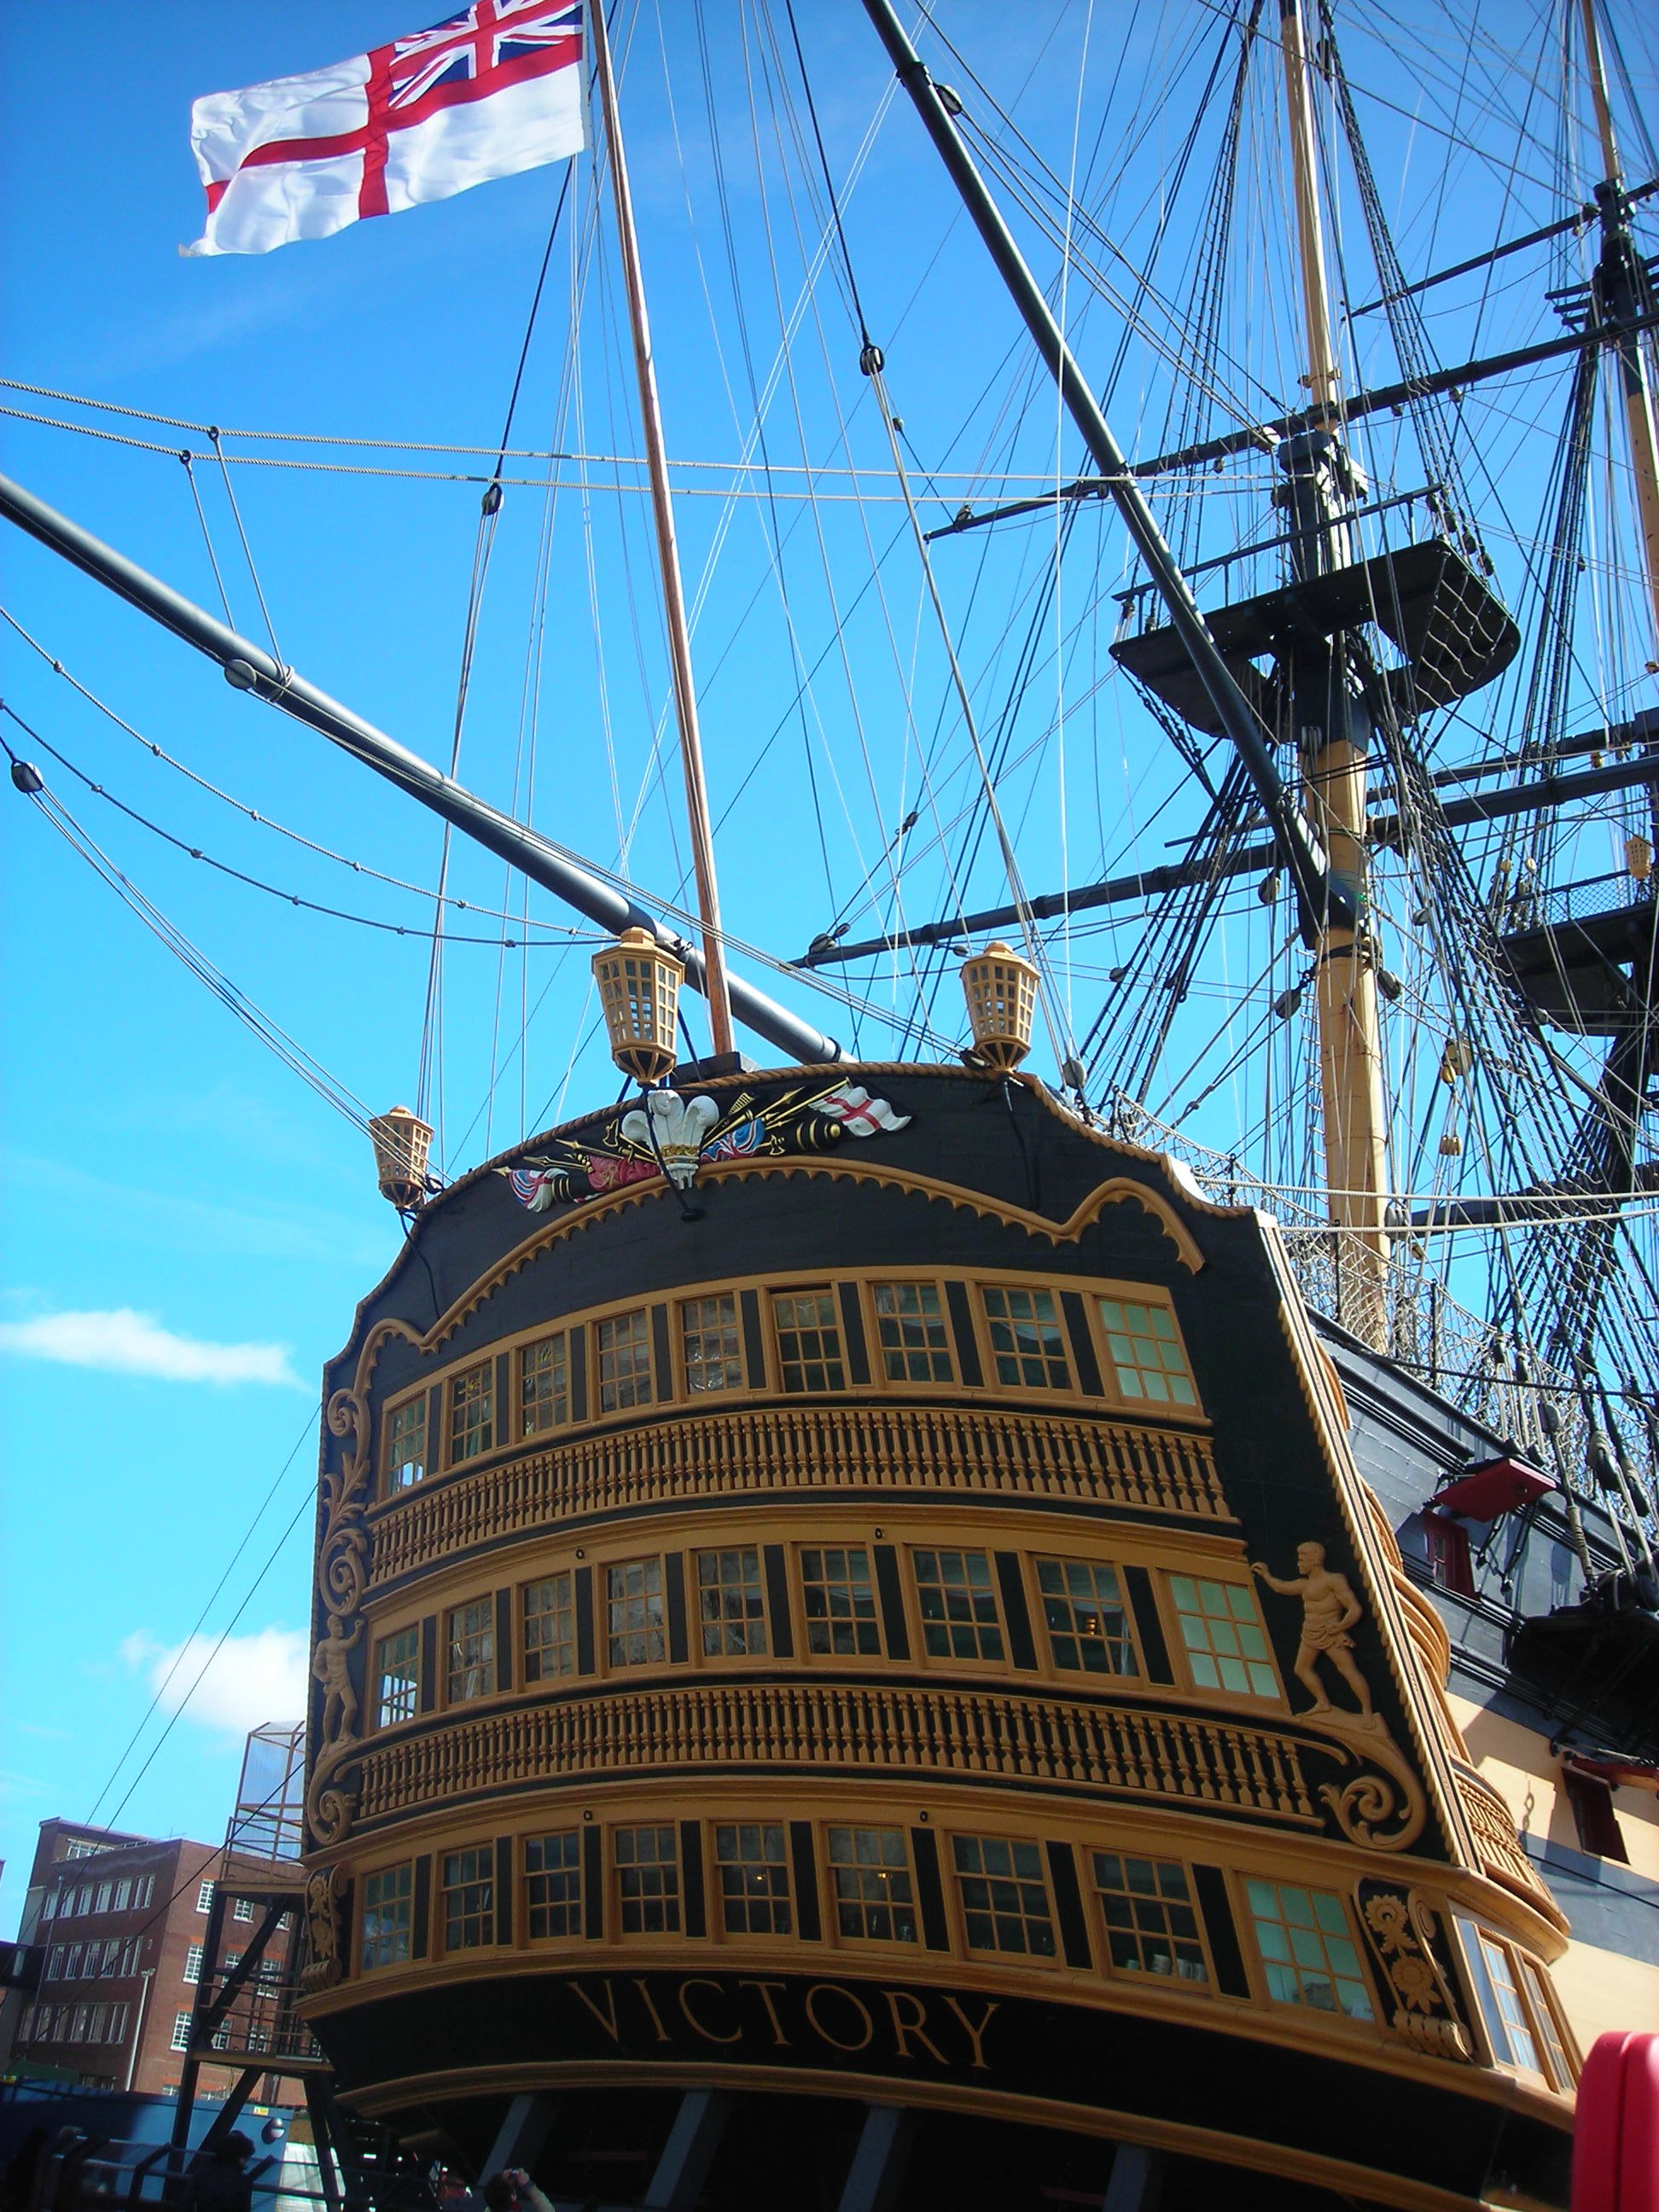 HMS Victory. Admiral Nelson's 104 gun ship of the line. Anne saw this when she was in Portsmouth. I love this picture!